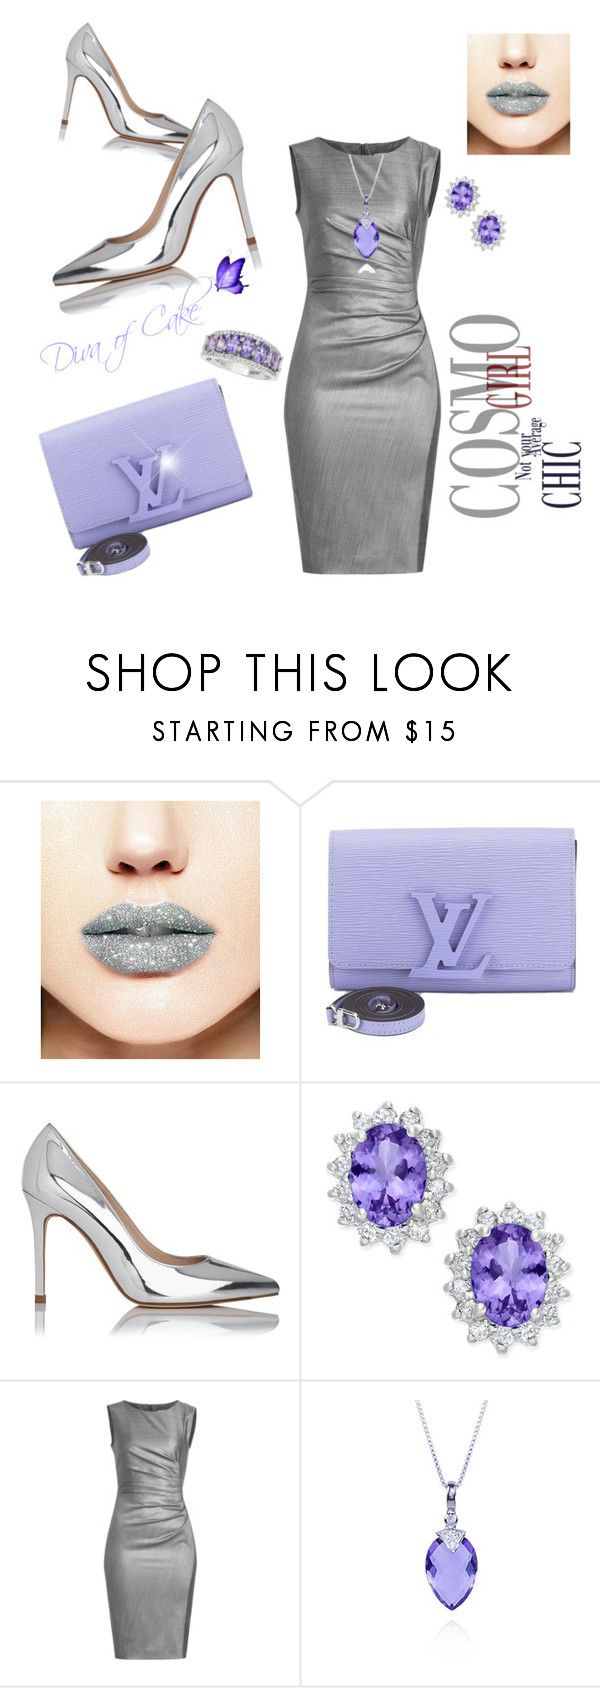 Silver and chic lavender by Diva of Cake featuring mode, MaxMara, L.K.Bennett, Louis Vuitton, Belk & Co. and Forever 21